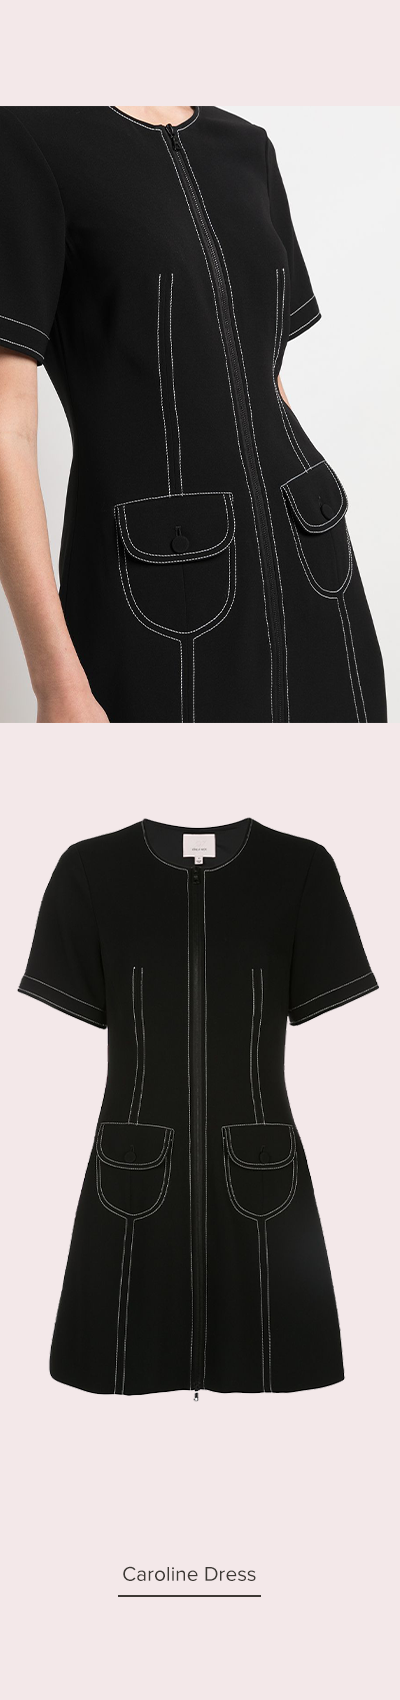 https://cinqasept.nyc/products/caroline-dress-in-black-ivory